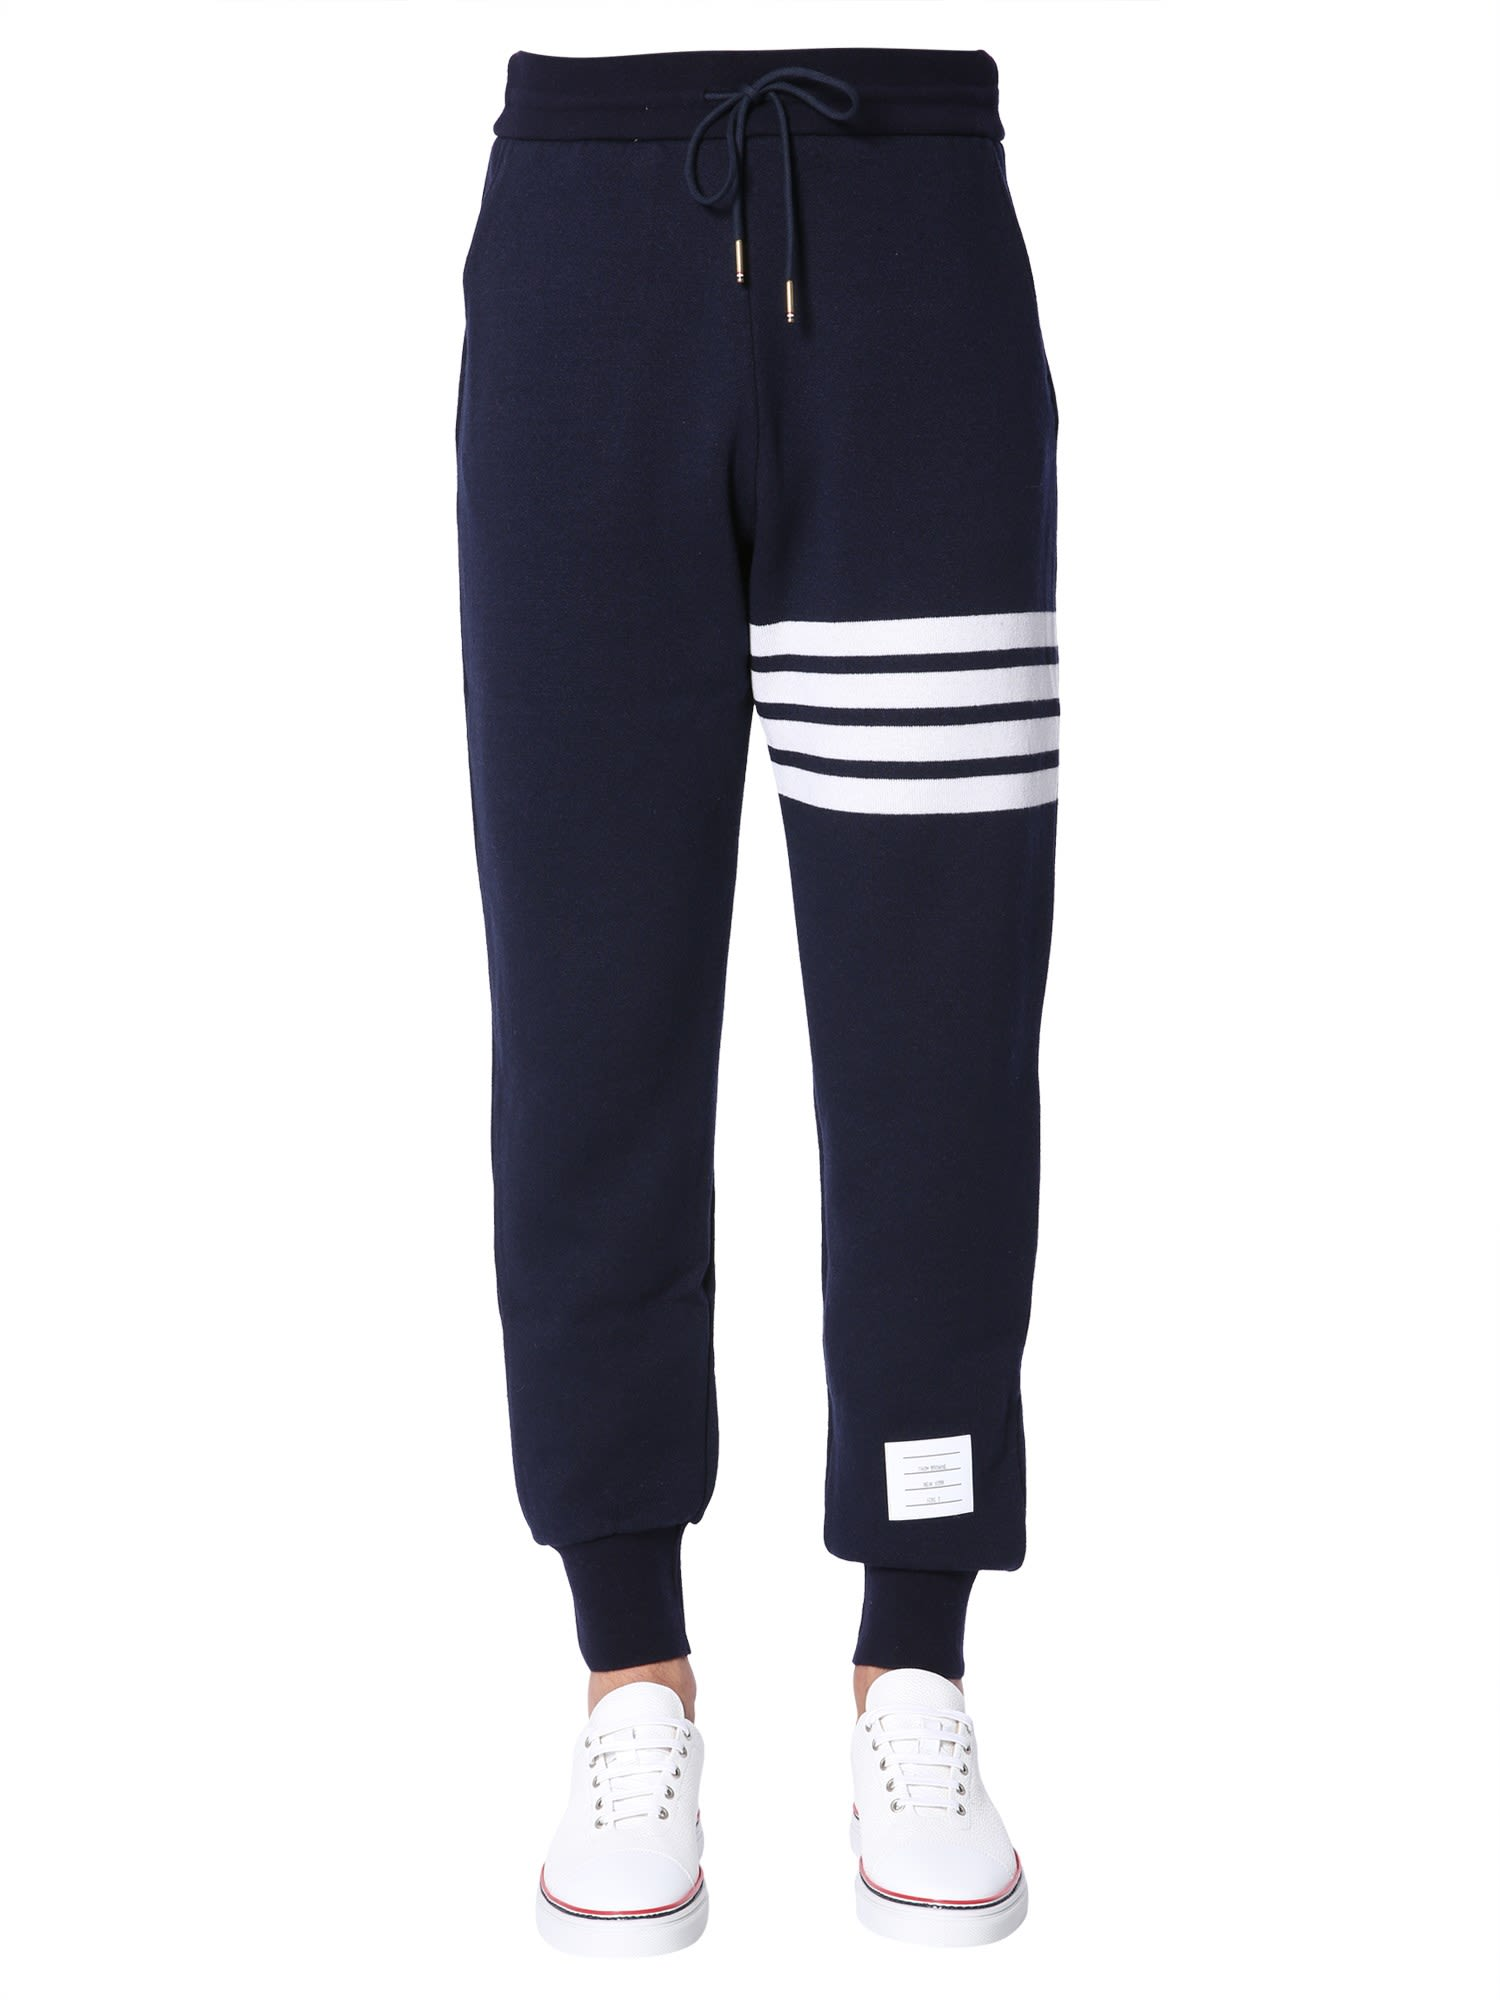 THOM BROWNE CASHMERE JOGGING TROUSERS